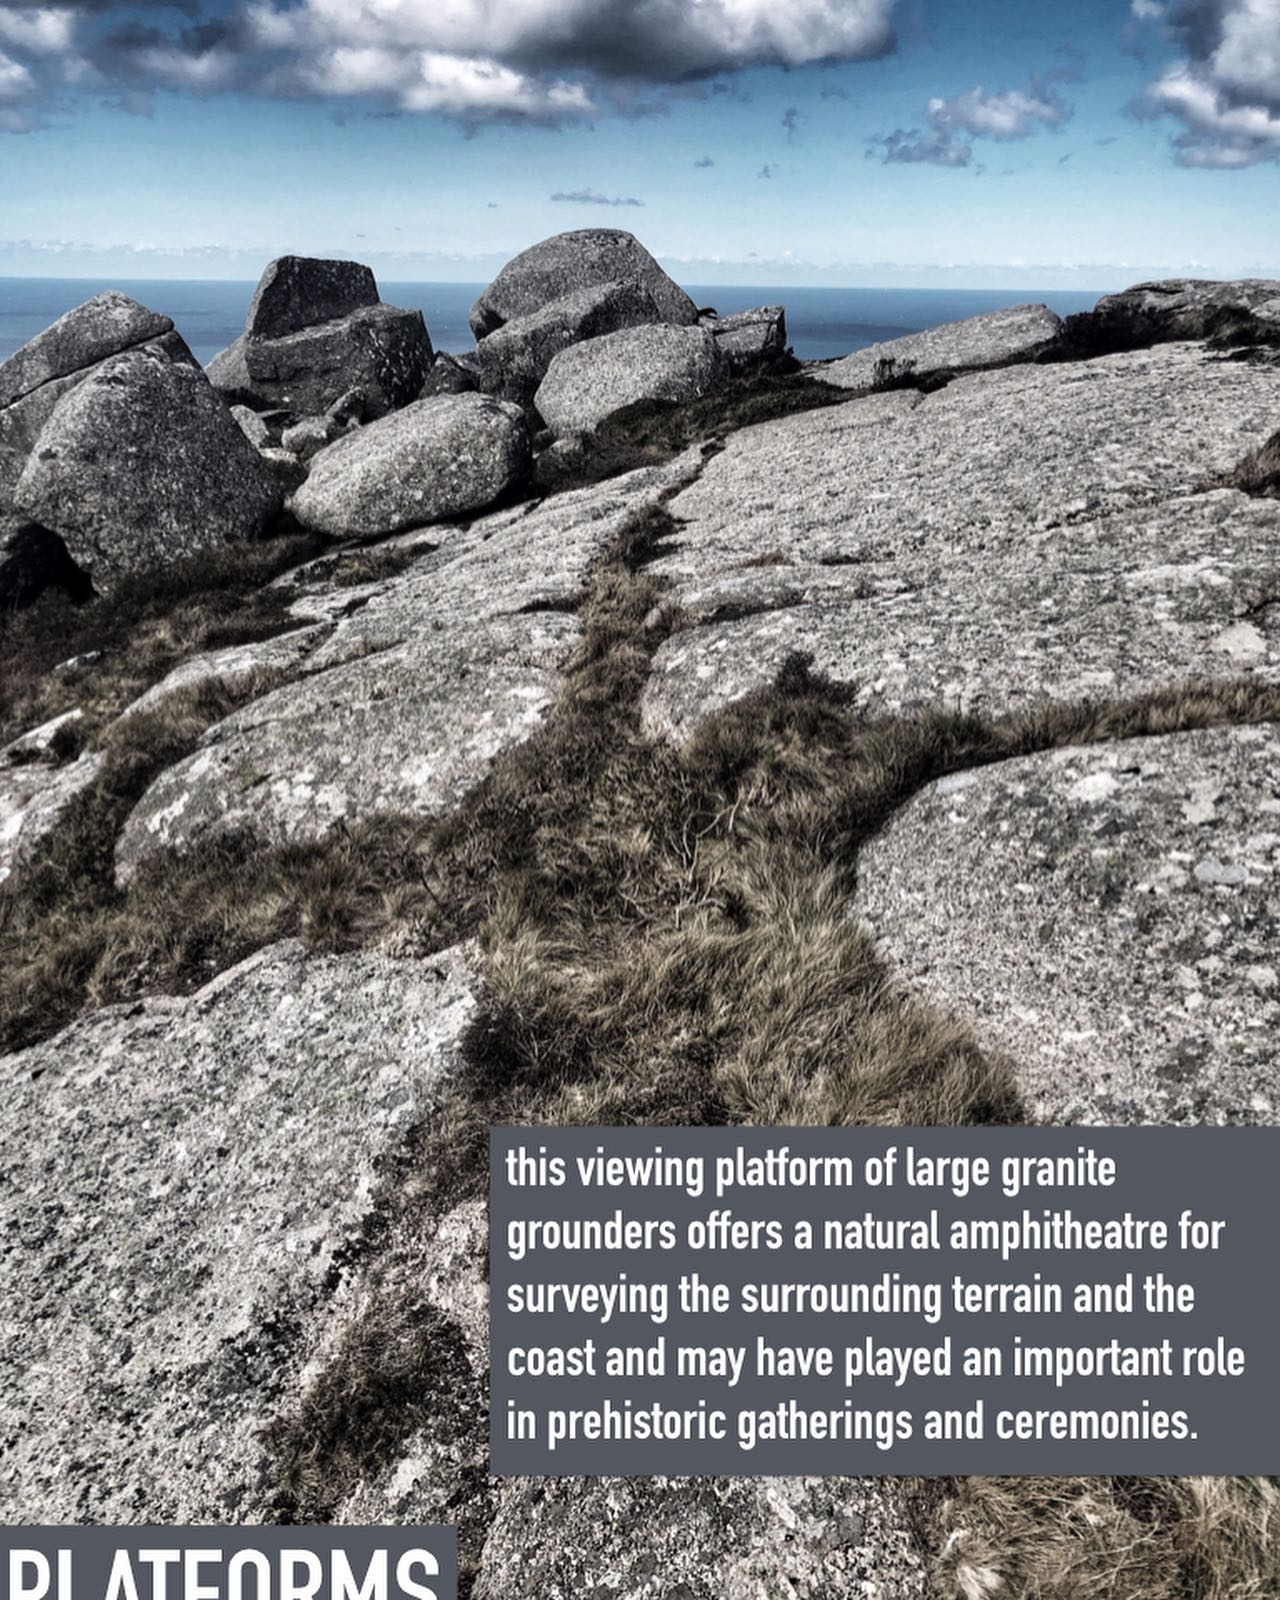 this viewing platform of large granite grounders offers a natural amphitheatre for surveying the surrounding terrain and the coast and may have played an important role in prehistoric gatherings and ceremonies. these special places have always played such a role throughout our human history in marking out the terrain to come together, take respite and to exchange stories and goods.#gathering, #prehistory, #prehistoricsites, #prehistoriclandscape, #exchange, #ancientsites, #ancientsite, #ancientwisdom, #gatheringplaces, #naturalamphitheatre, #ancientamphitheatre, #specialsites, #montagecity.com